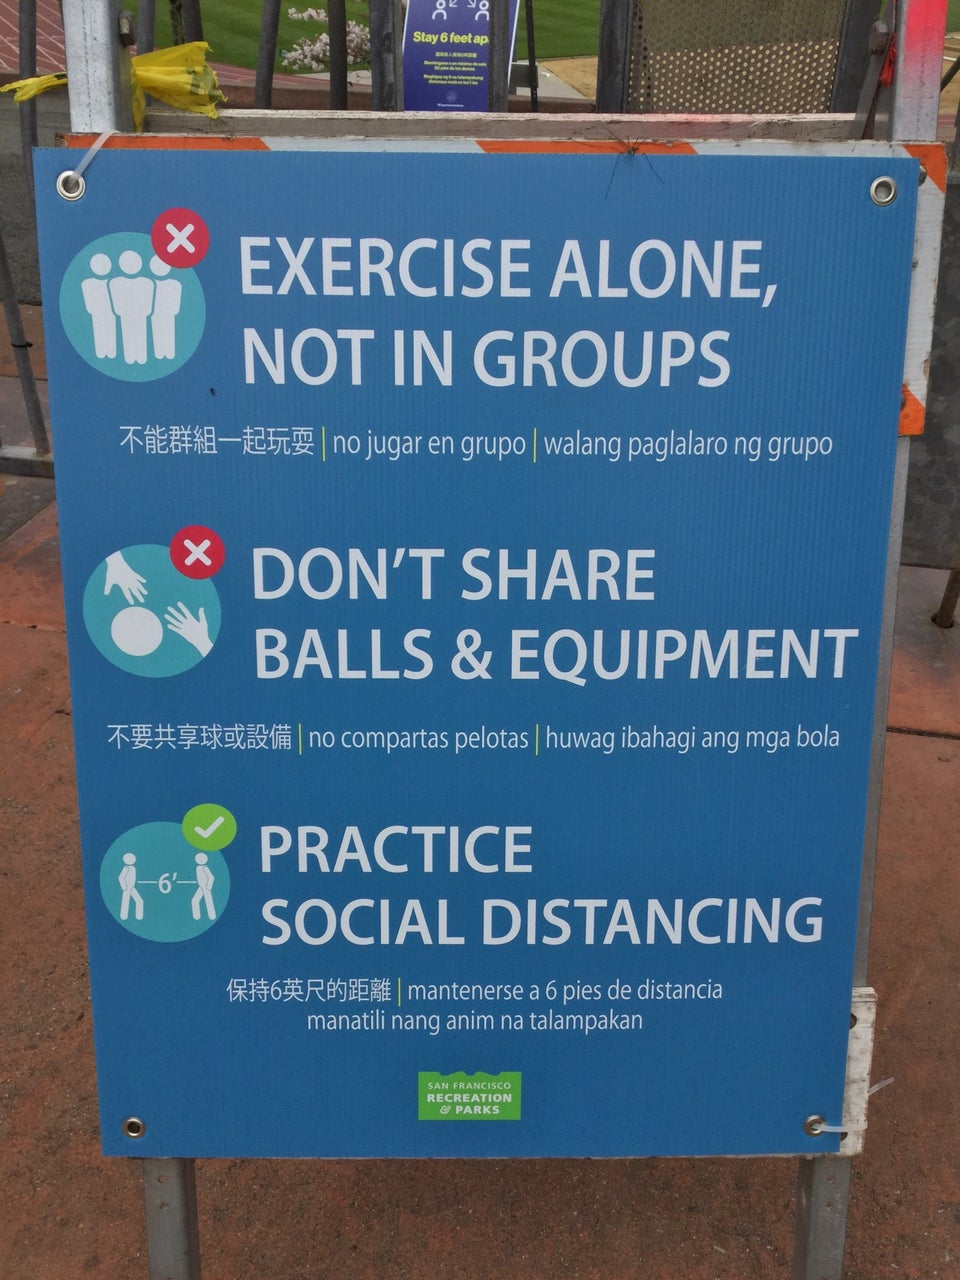 "Close-up of a sign with three statements, each translated into Chinese, Spanish, and Filipino, stating ""EXERCISE ALONE, NOT IN GROUPS"", ""DON'T SHARE BALLS & EQUIPMENT"", and ""PRACTICE SOCIAL DISTANCING"", below those a small San Francisco Recreation & Parks logo."